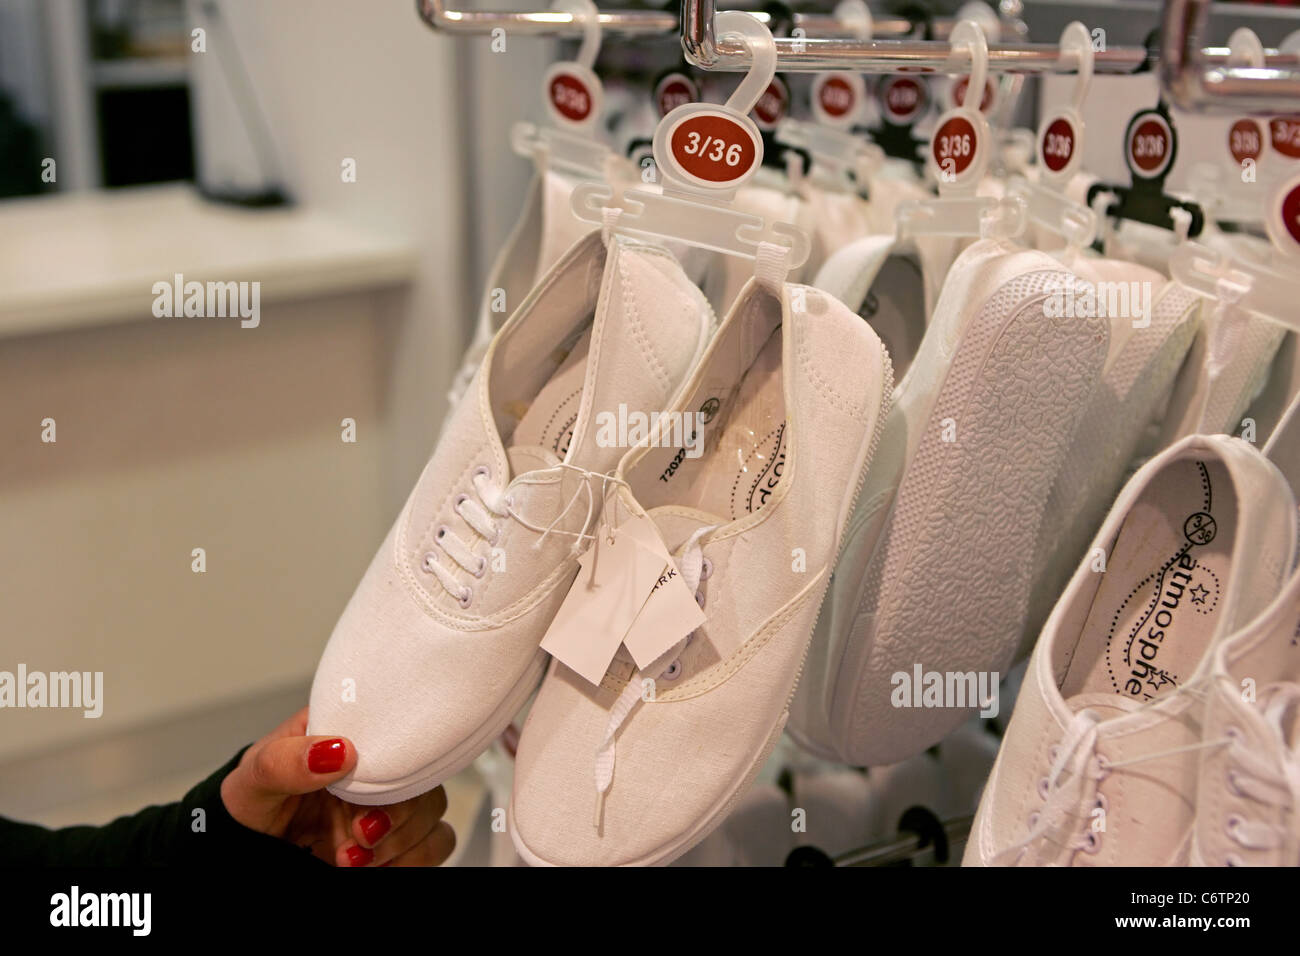 Primark Shoes High Resolution Stock